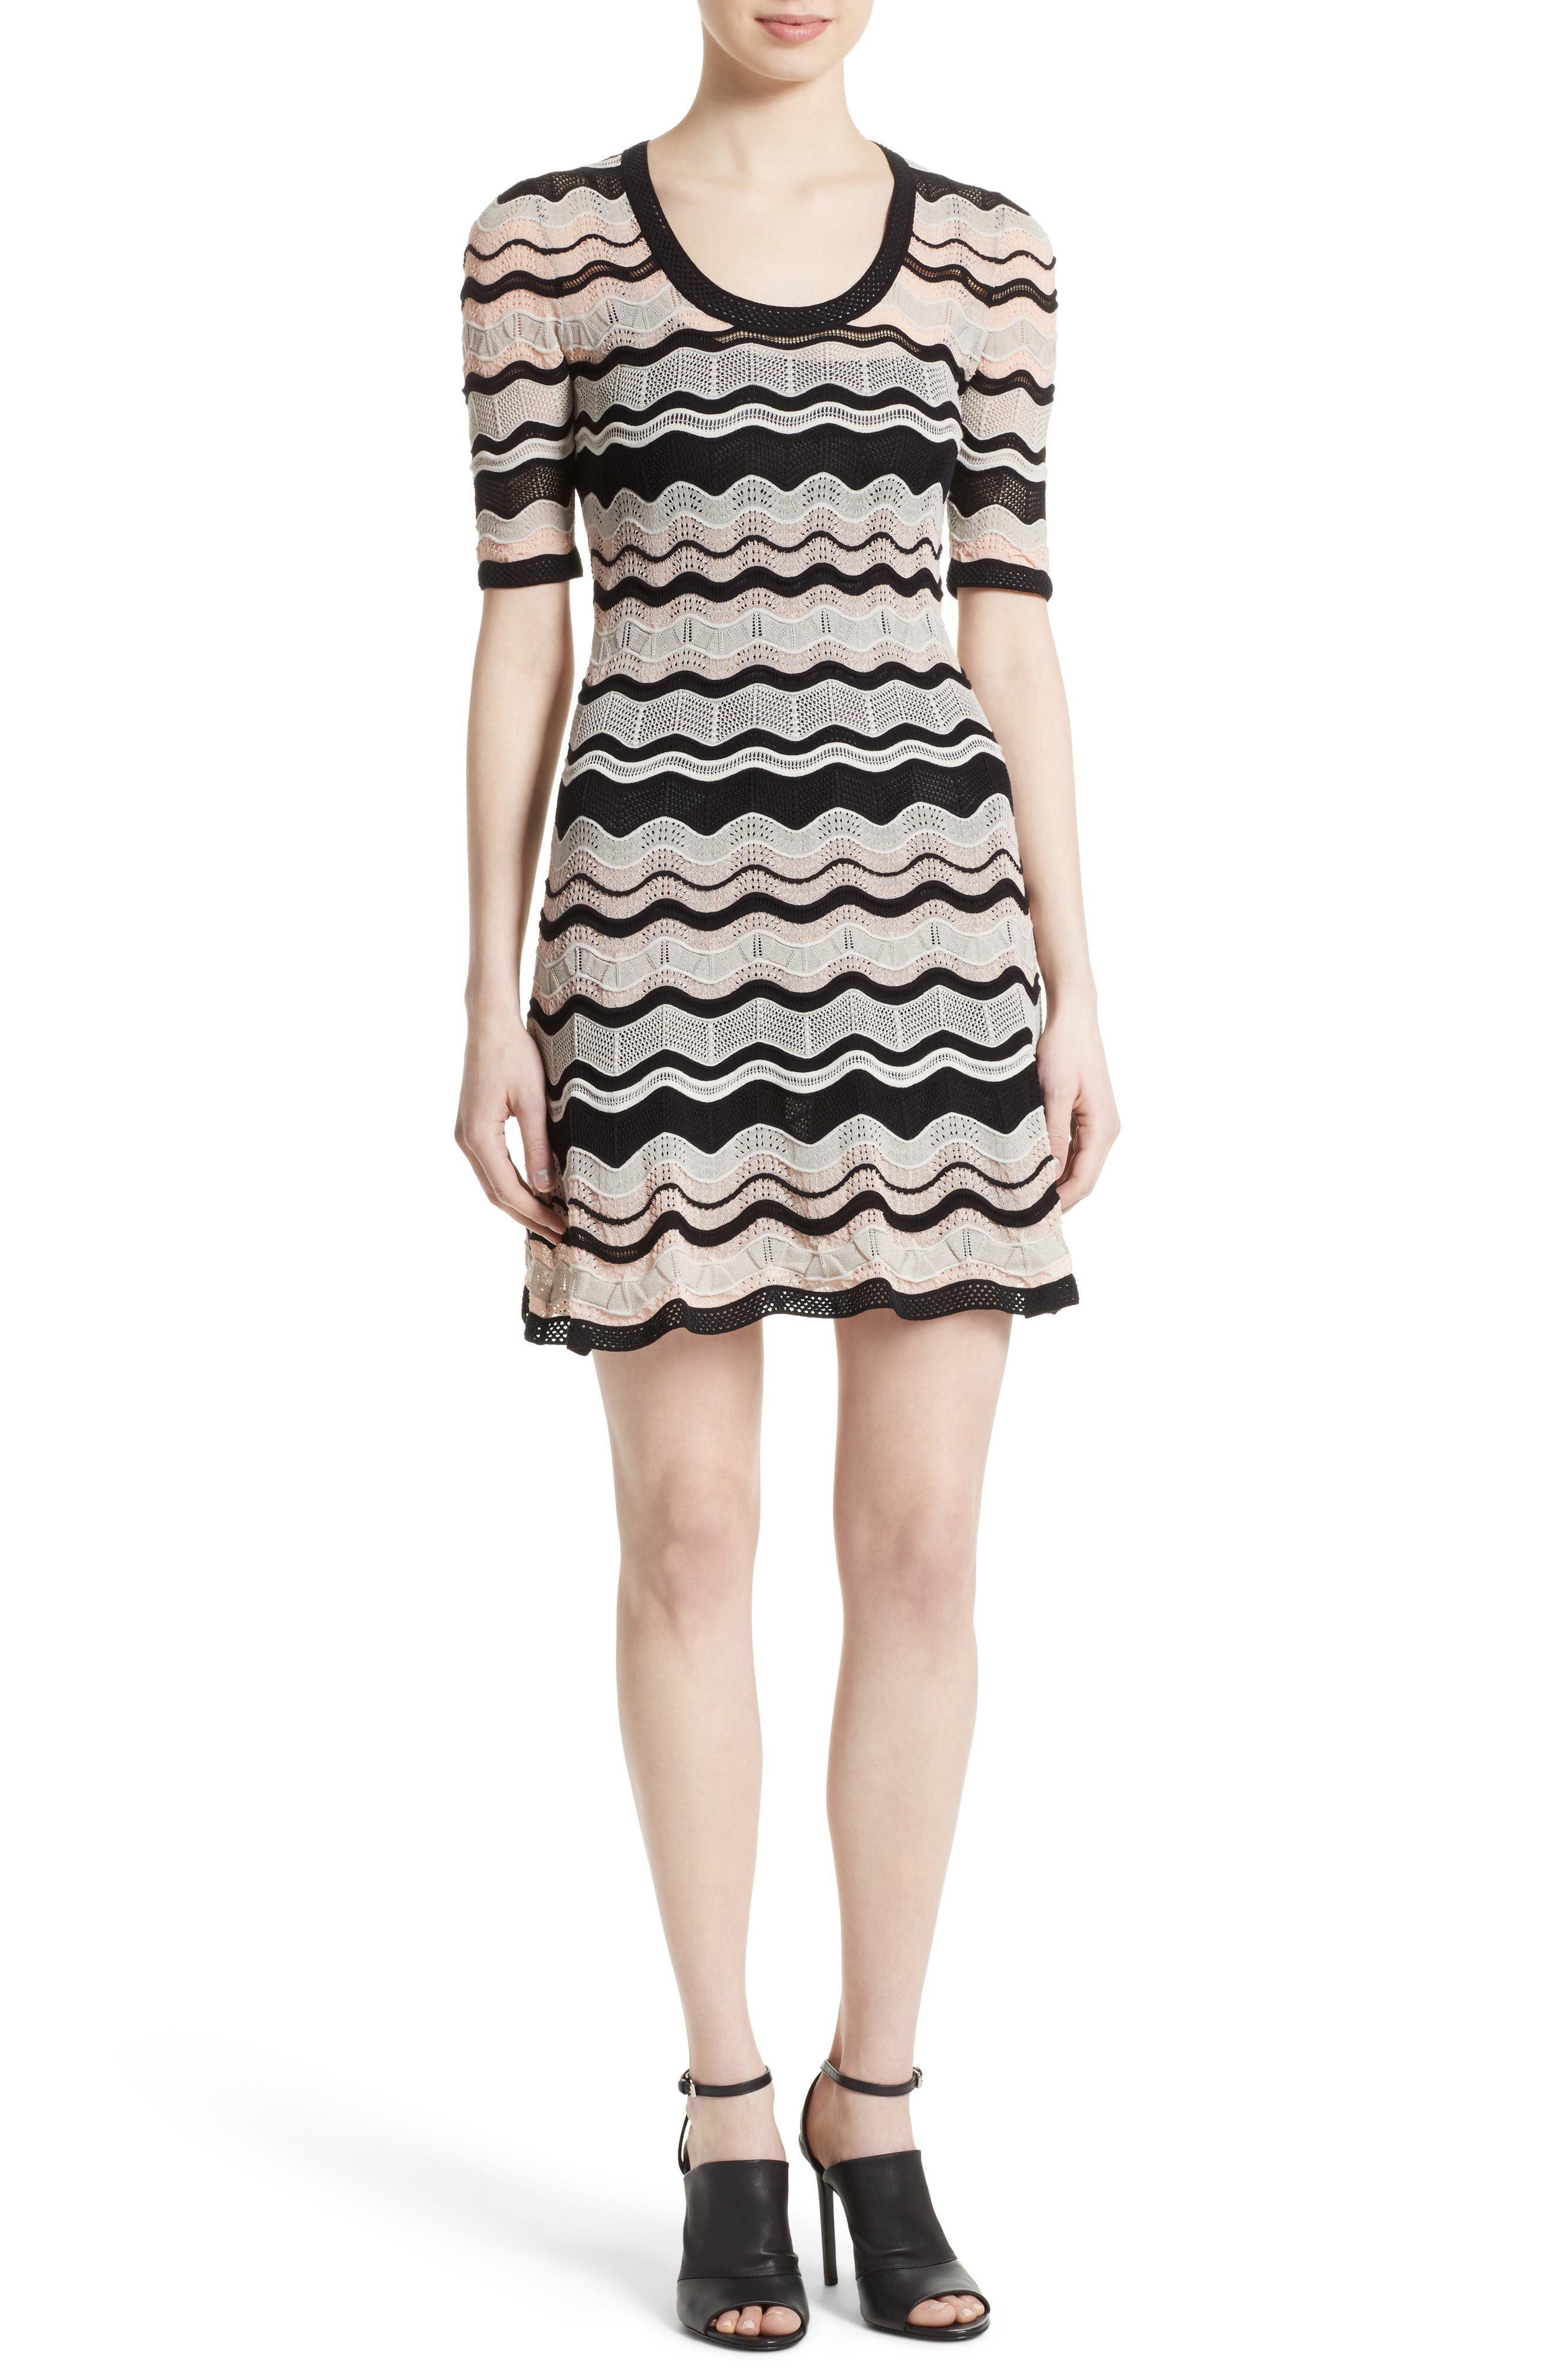 M Missoni Ripple Ribbon Fit & Flare Dress